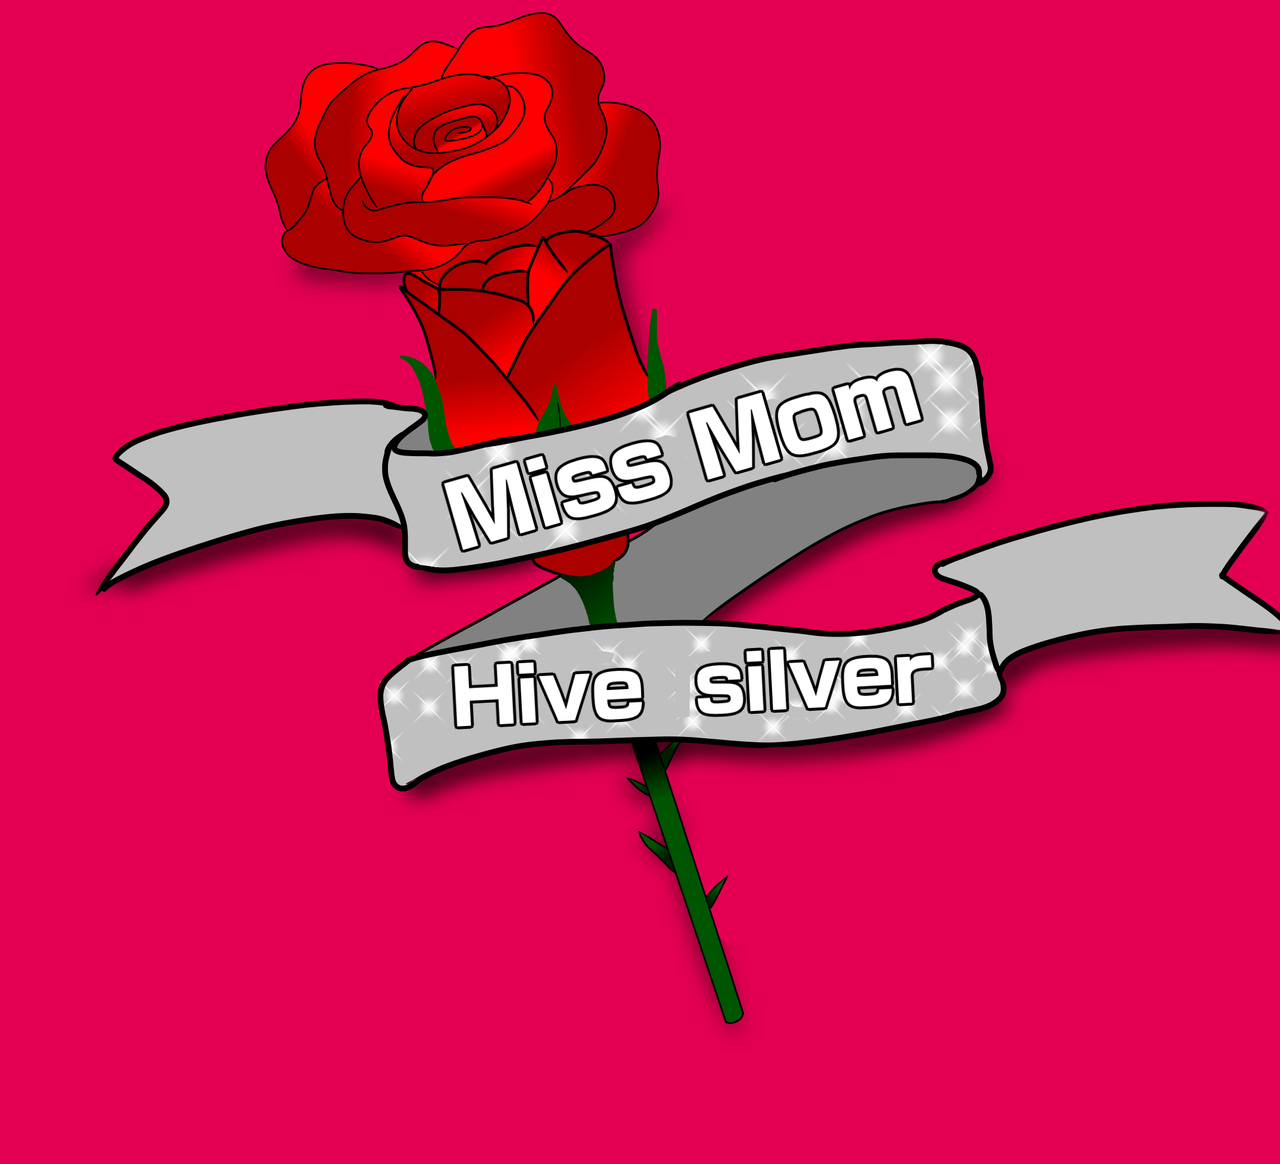 Miss_momm_silver-1.png